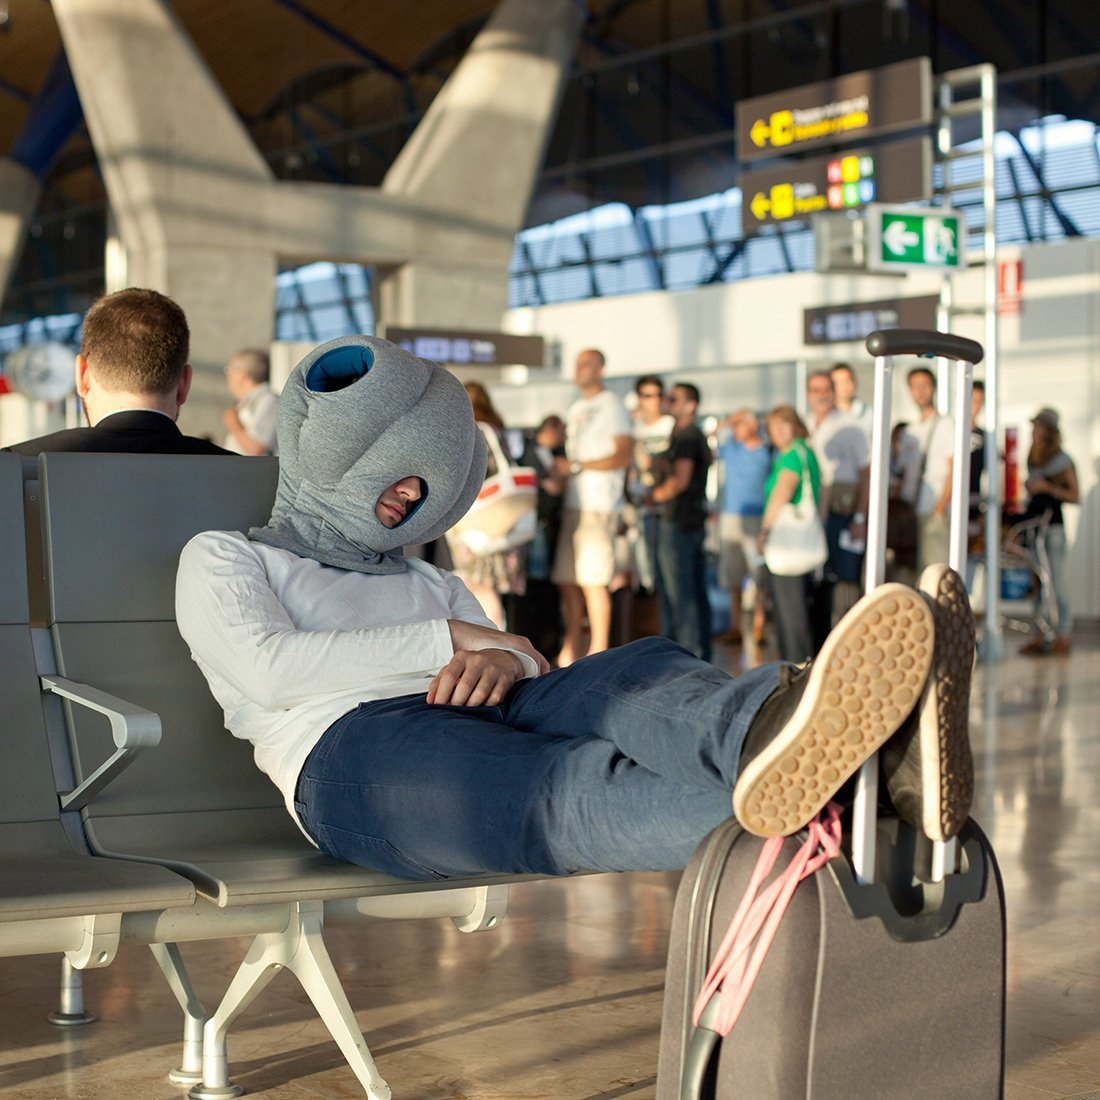 original ostrich pillow